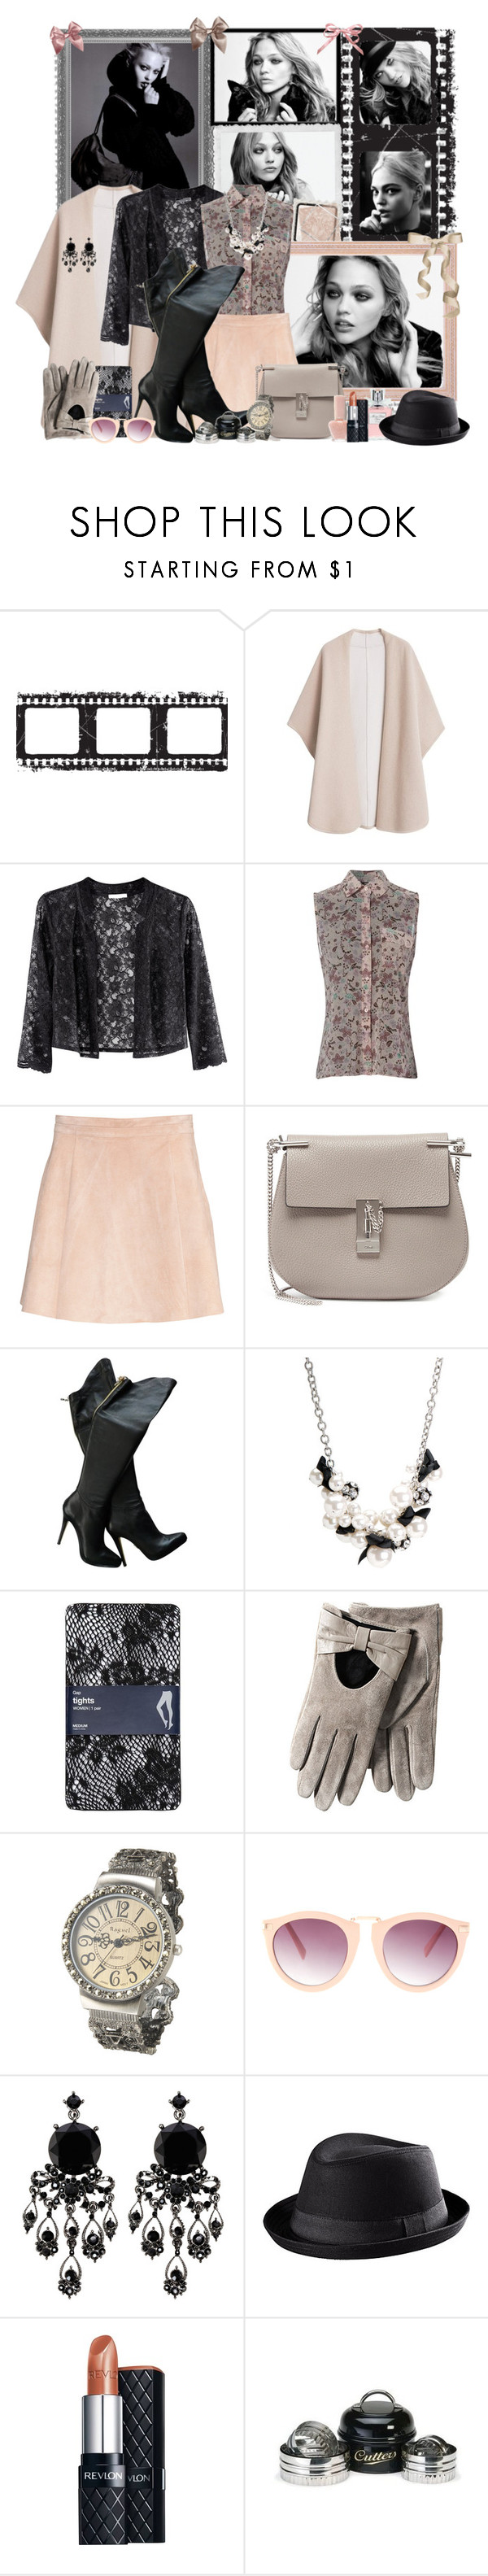 """melancholic and workaholic"" by margarita25 ❤ liked on Polyvore featuring Pringle of Scotland, MANGO, H&M, Jane Norman, Chloé, Betsey Johnson, Gap, ASOS, Coast and Paul & Joe"